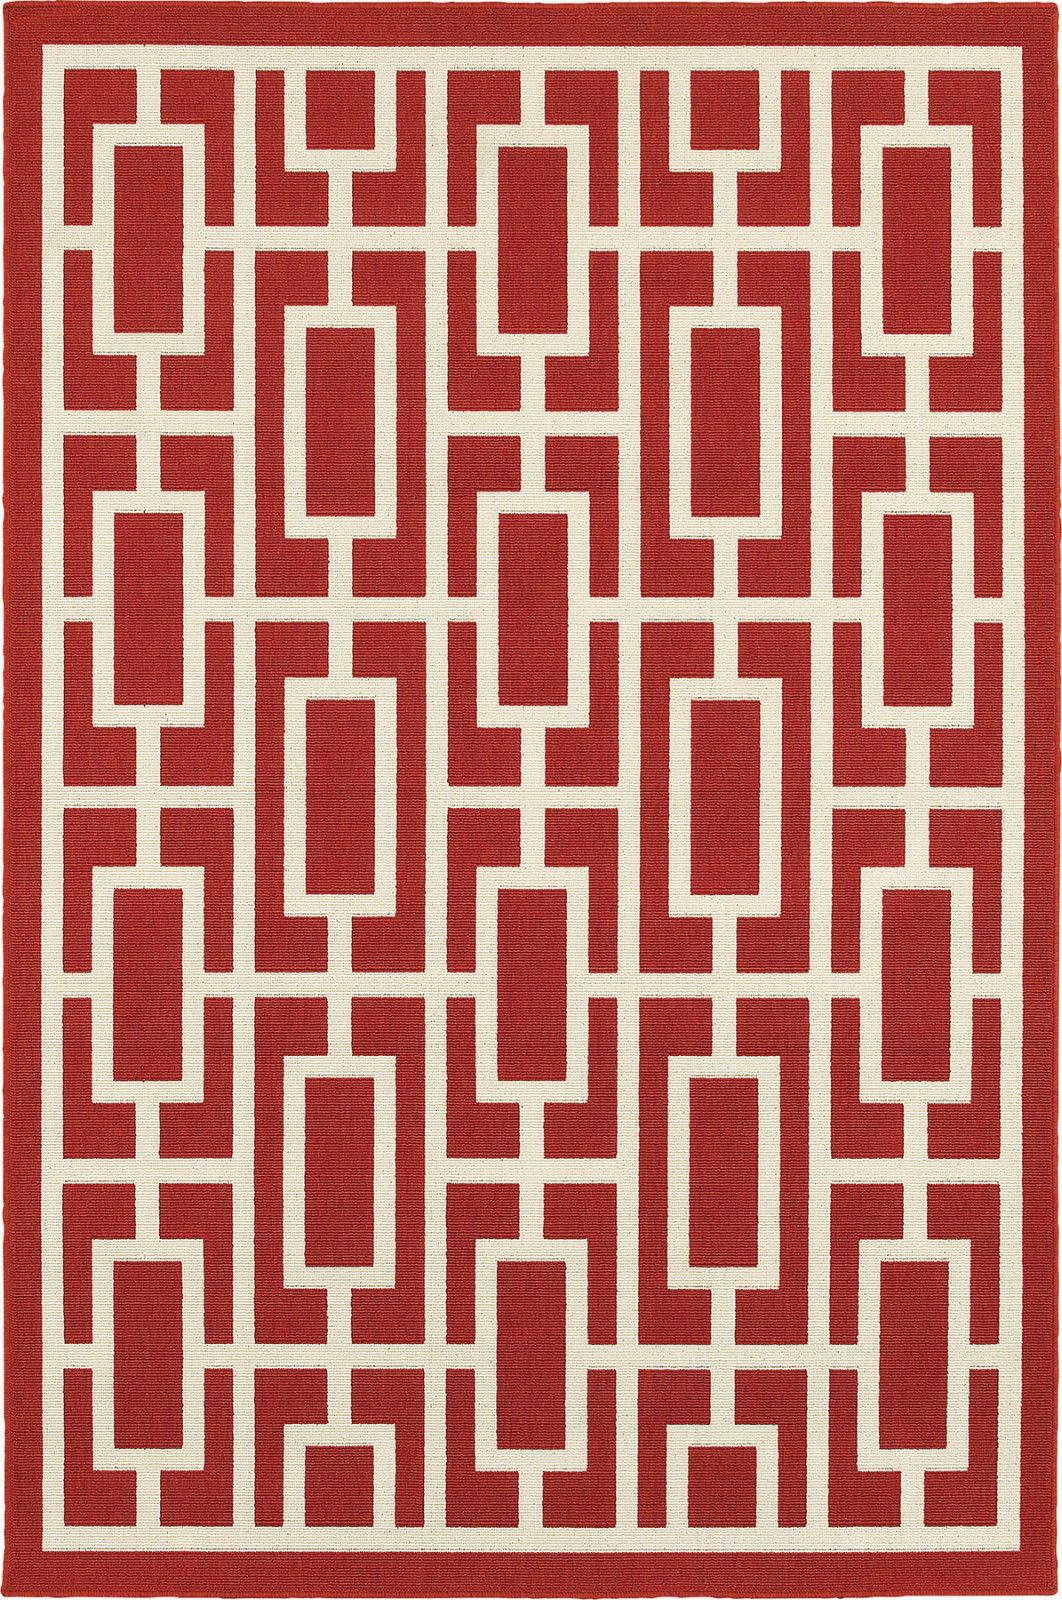 "4x6 (3'7"" x 5'6"" ) Contemporary Geometric Red Indoor Outdoor Area Rug"